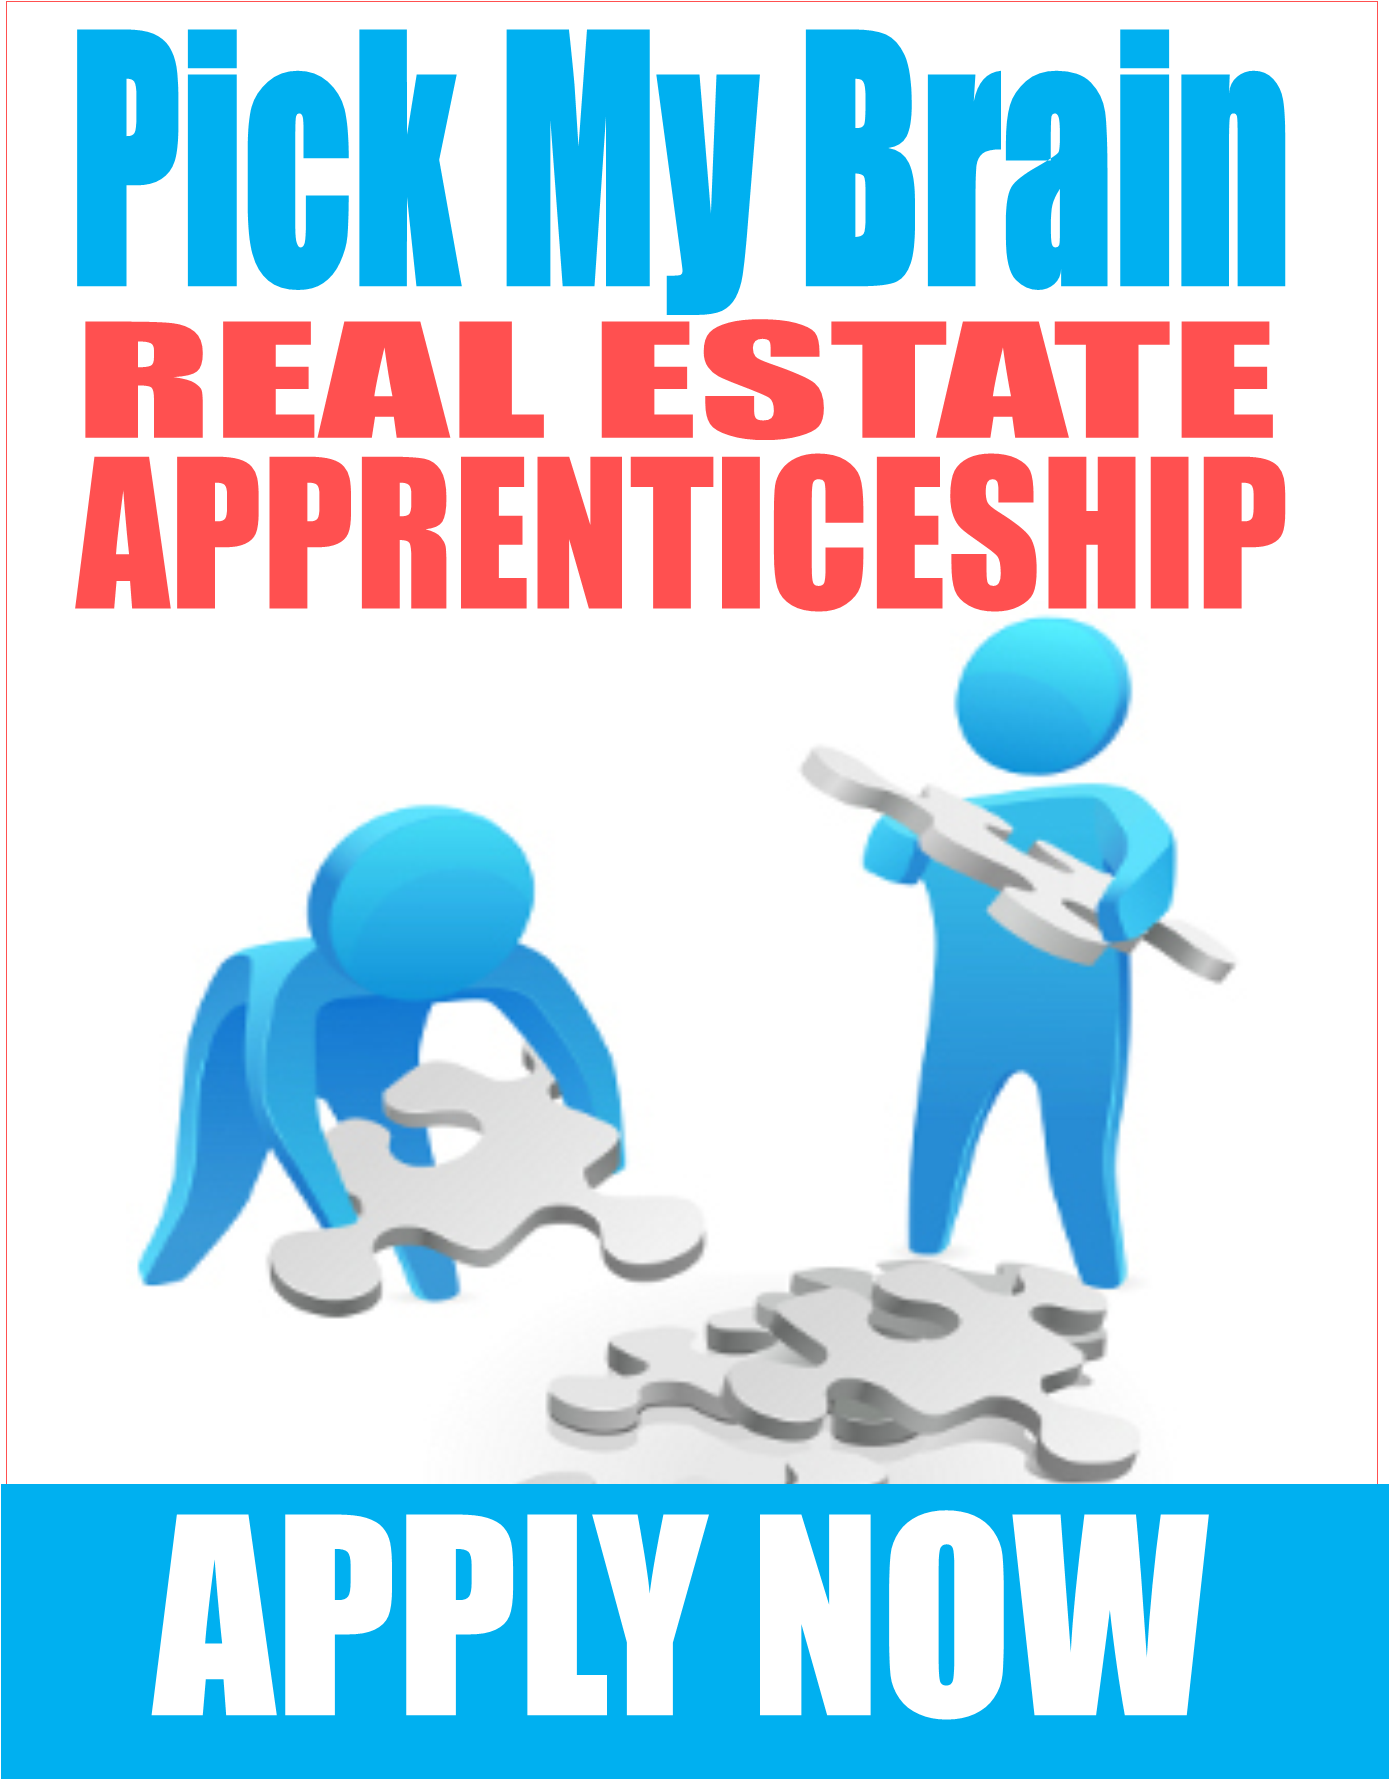 Apply for the real estate apprenticeship